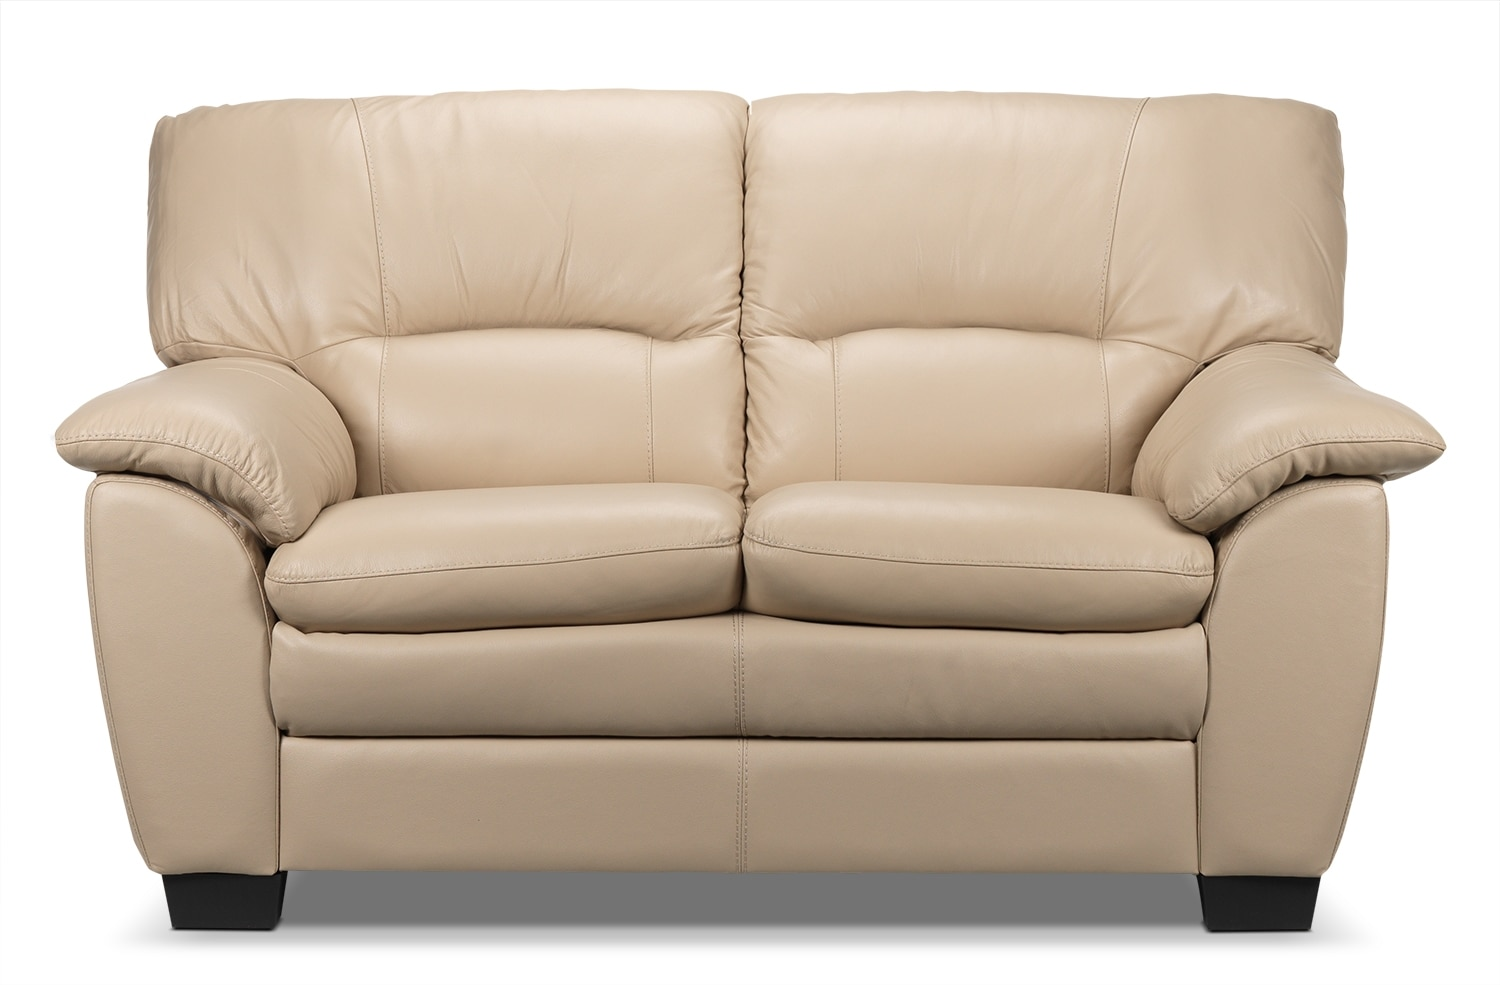 Rodero Loveseat - Pebble